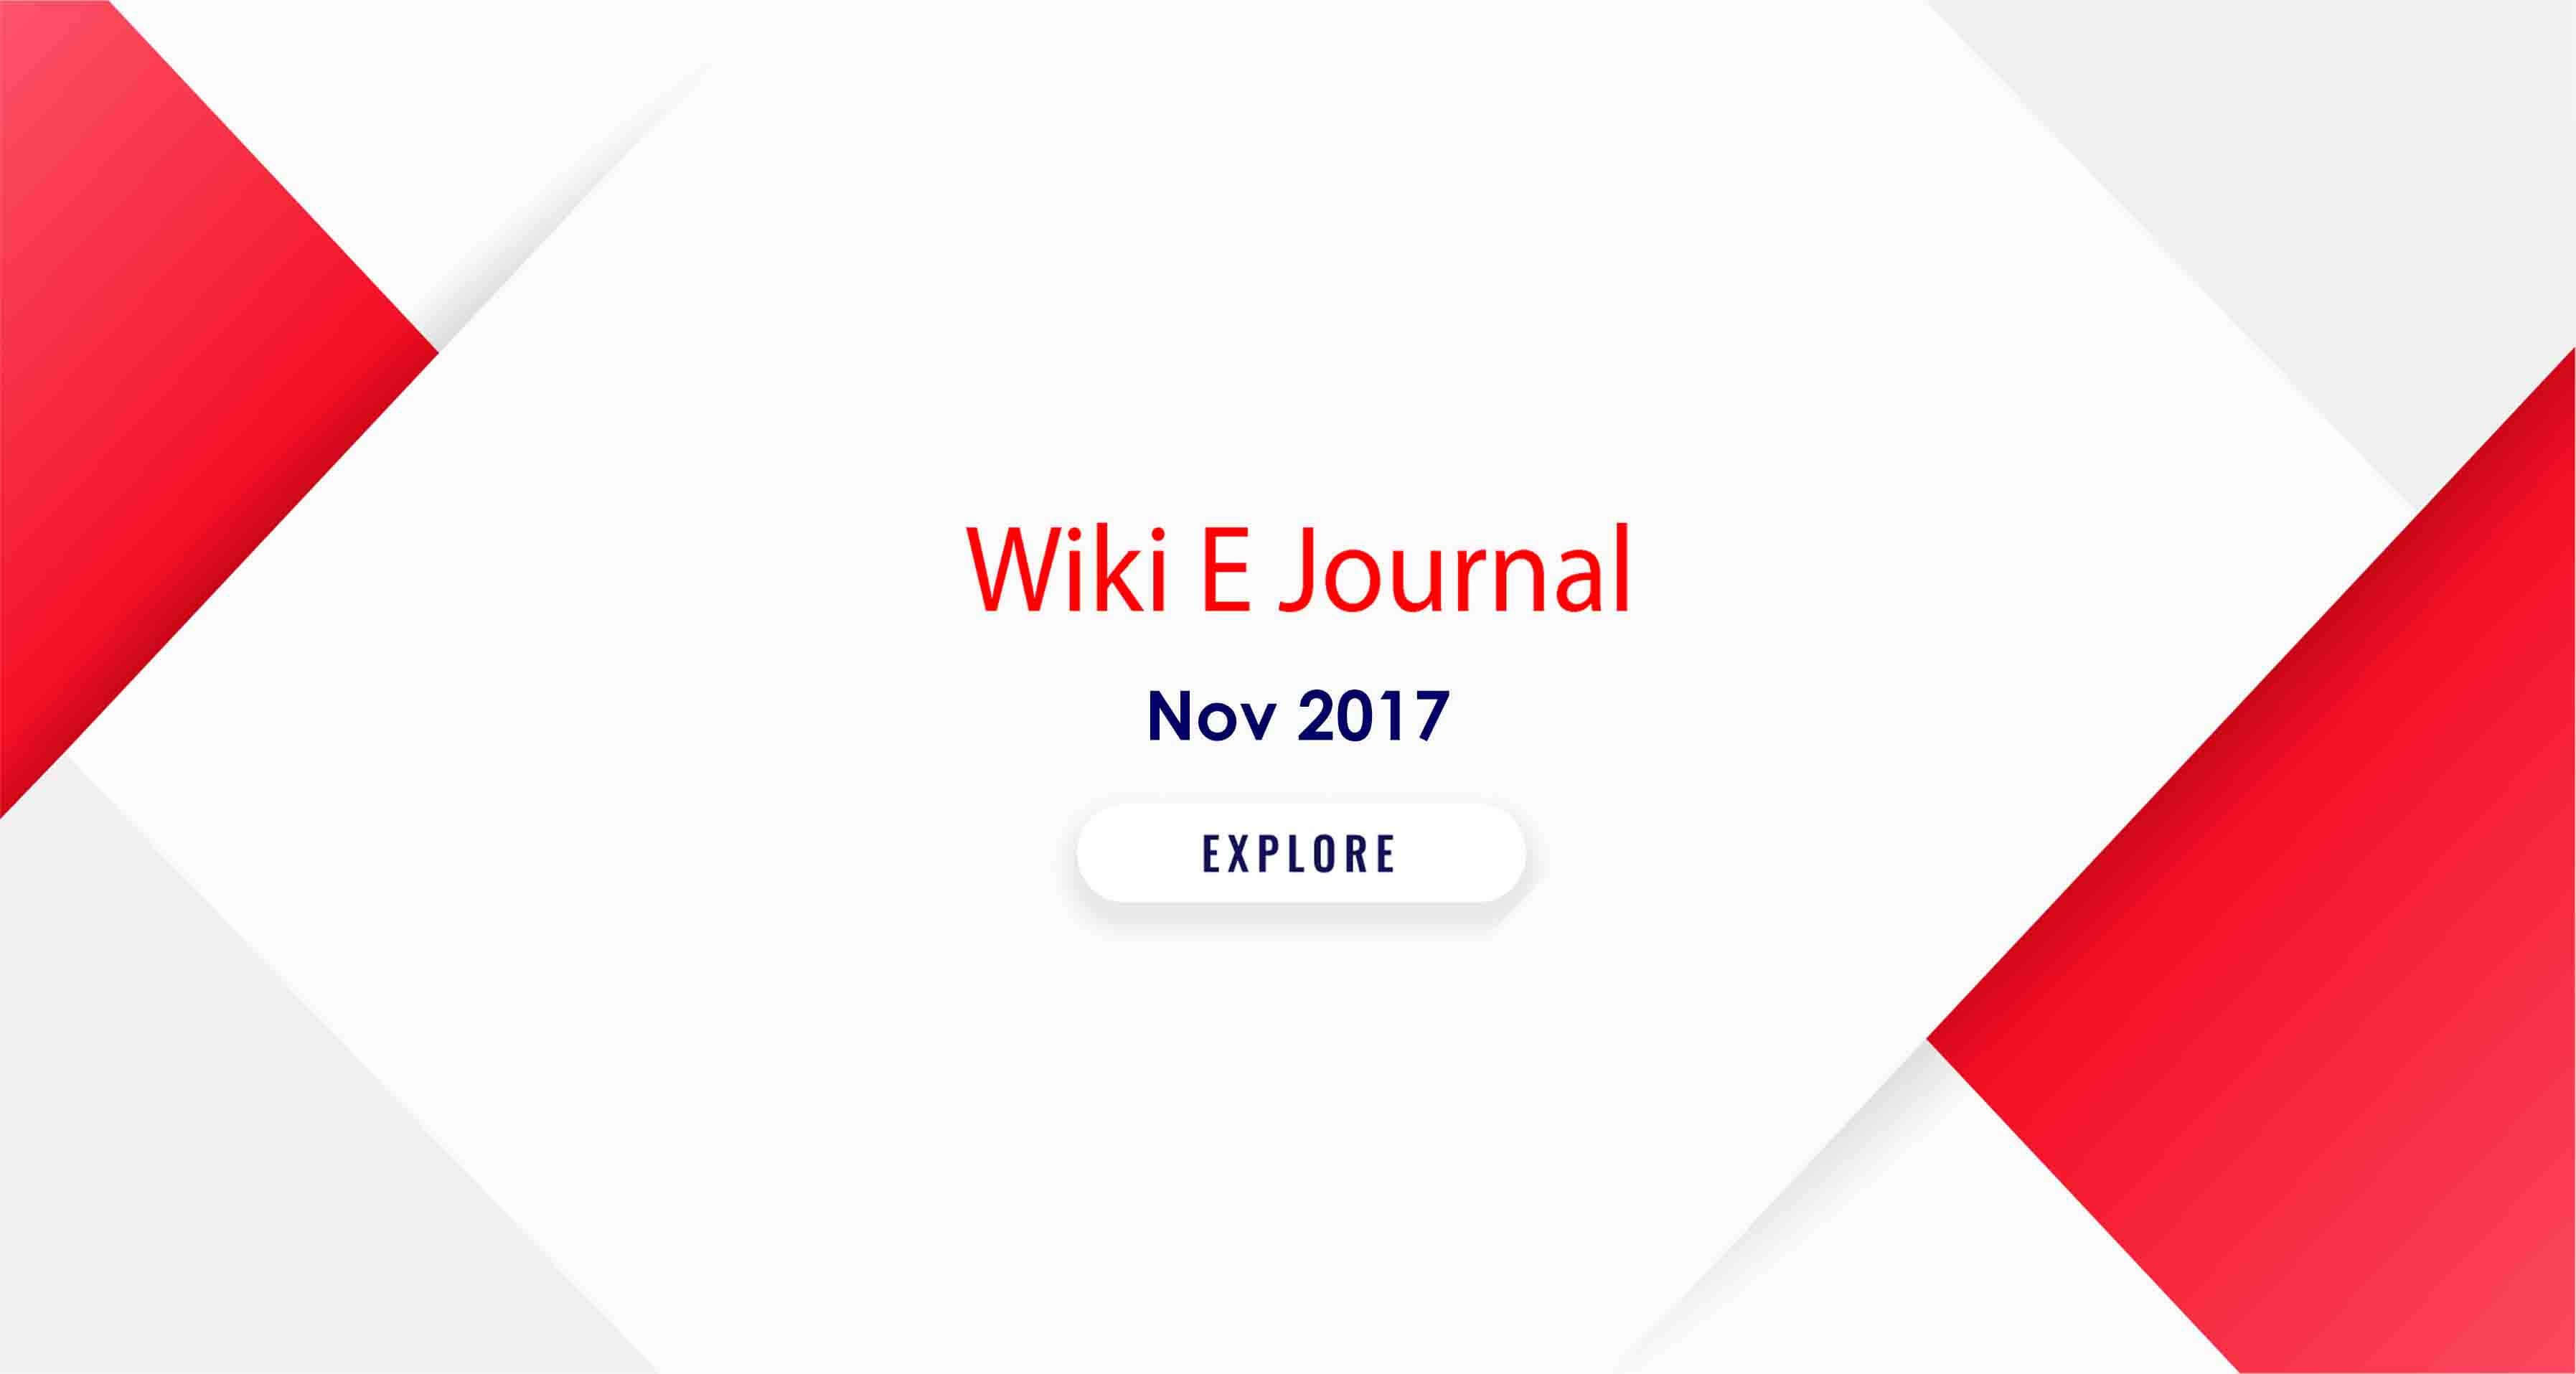 SBS WIKI E Journal Nov 2017